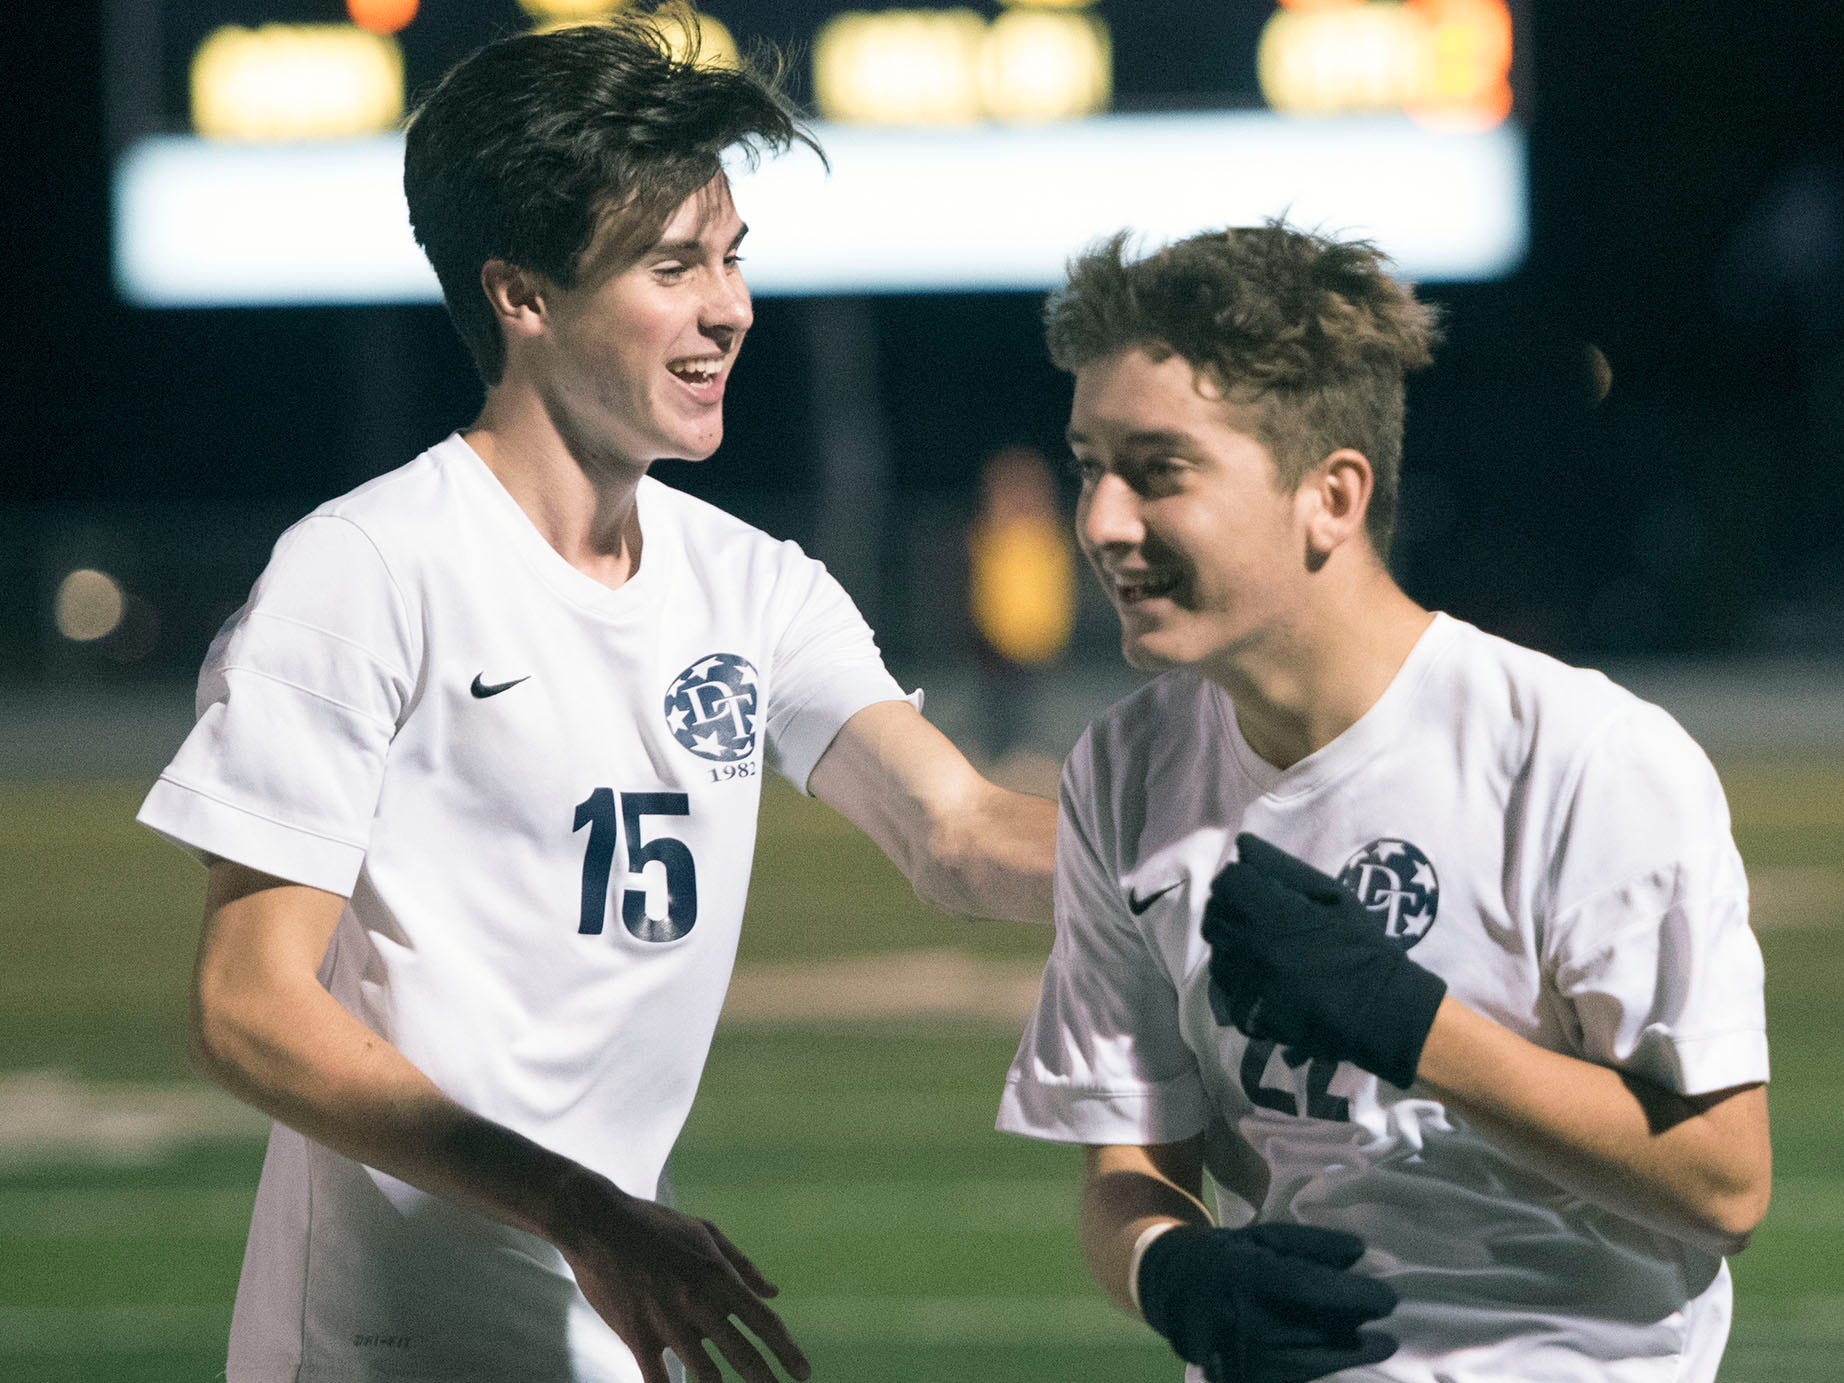 Dallastown teammates Mike Shirey (15) and Joe Thomas (22) celebrate a victory over Chambersburg. Chambersburg lost a first round D3 soccer match to Dallastown 2-1 on Tuesday, Oct. 23, 2018.